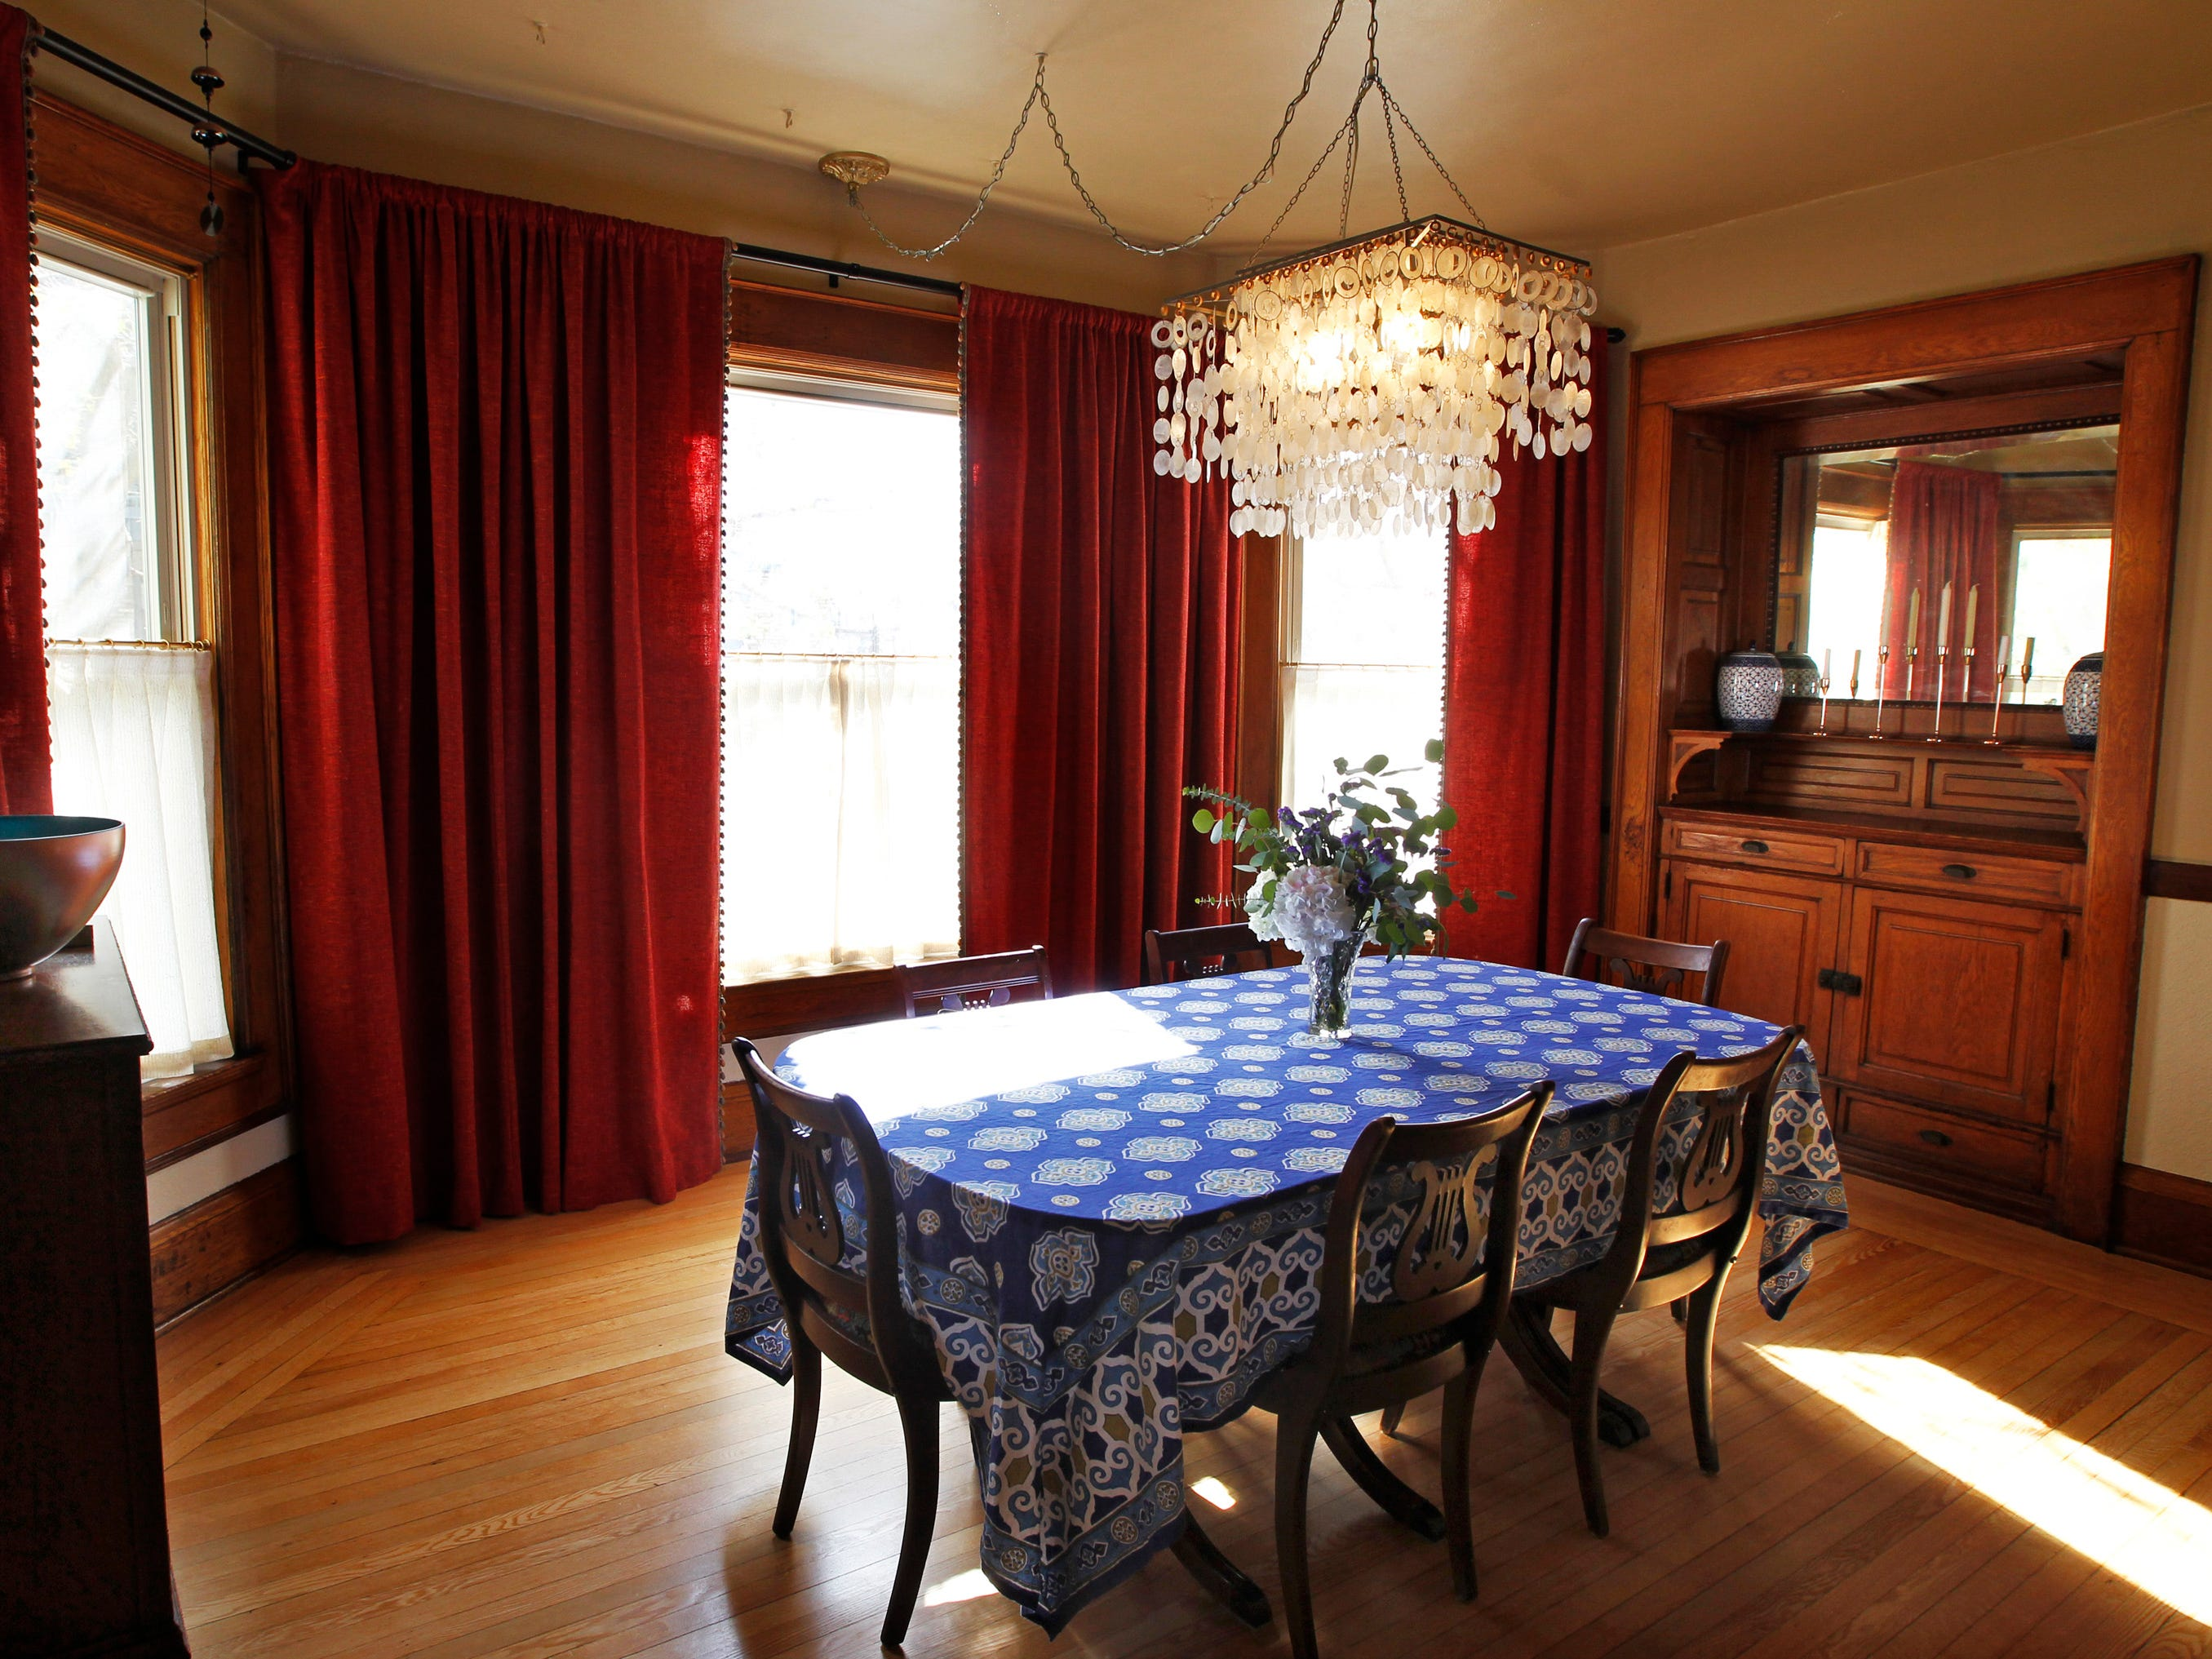 The dining room has a built-in china cabinet and floor-to-ceiling windows.